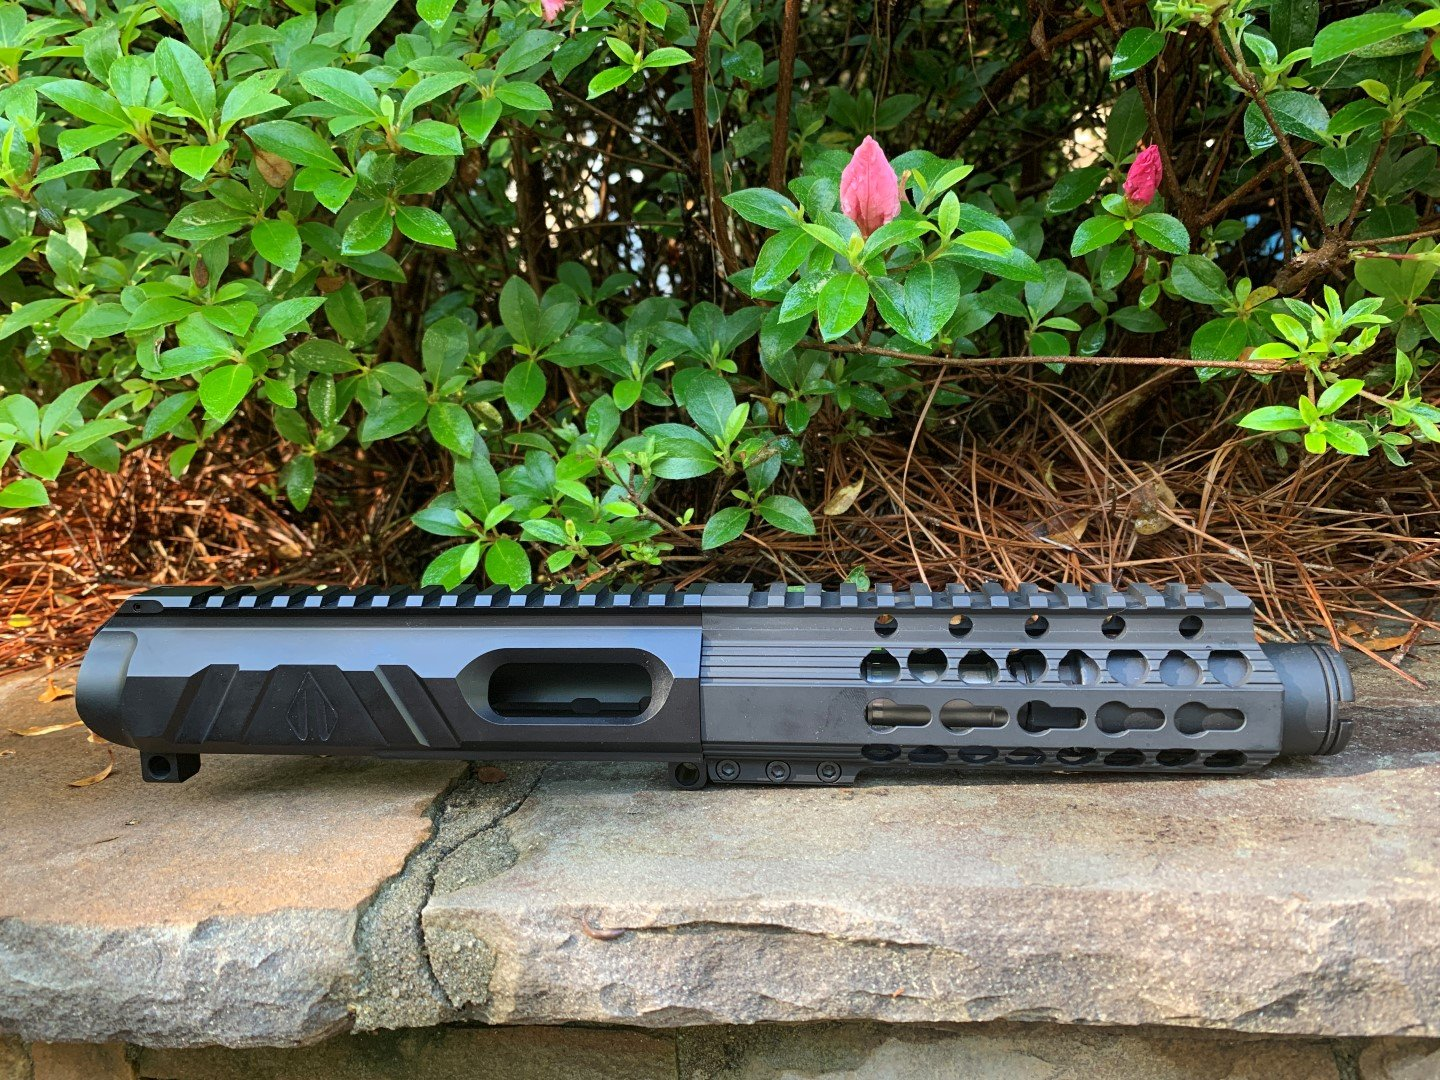 4 5 inch AR-15 Non Reciprocating Side Charging 9mm CHF Upper w/CAN - $369 99